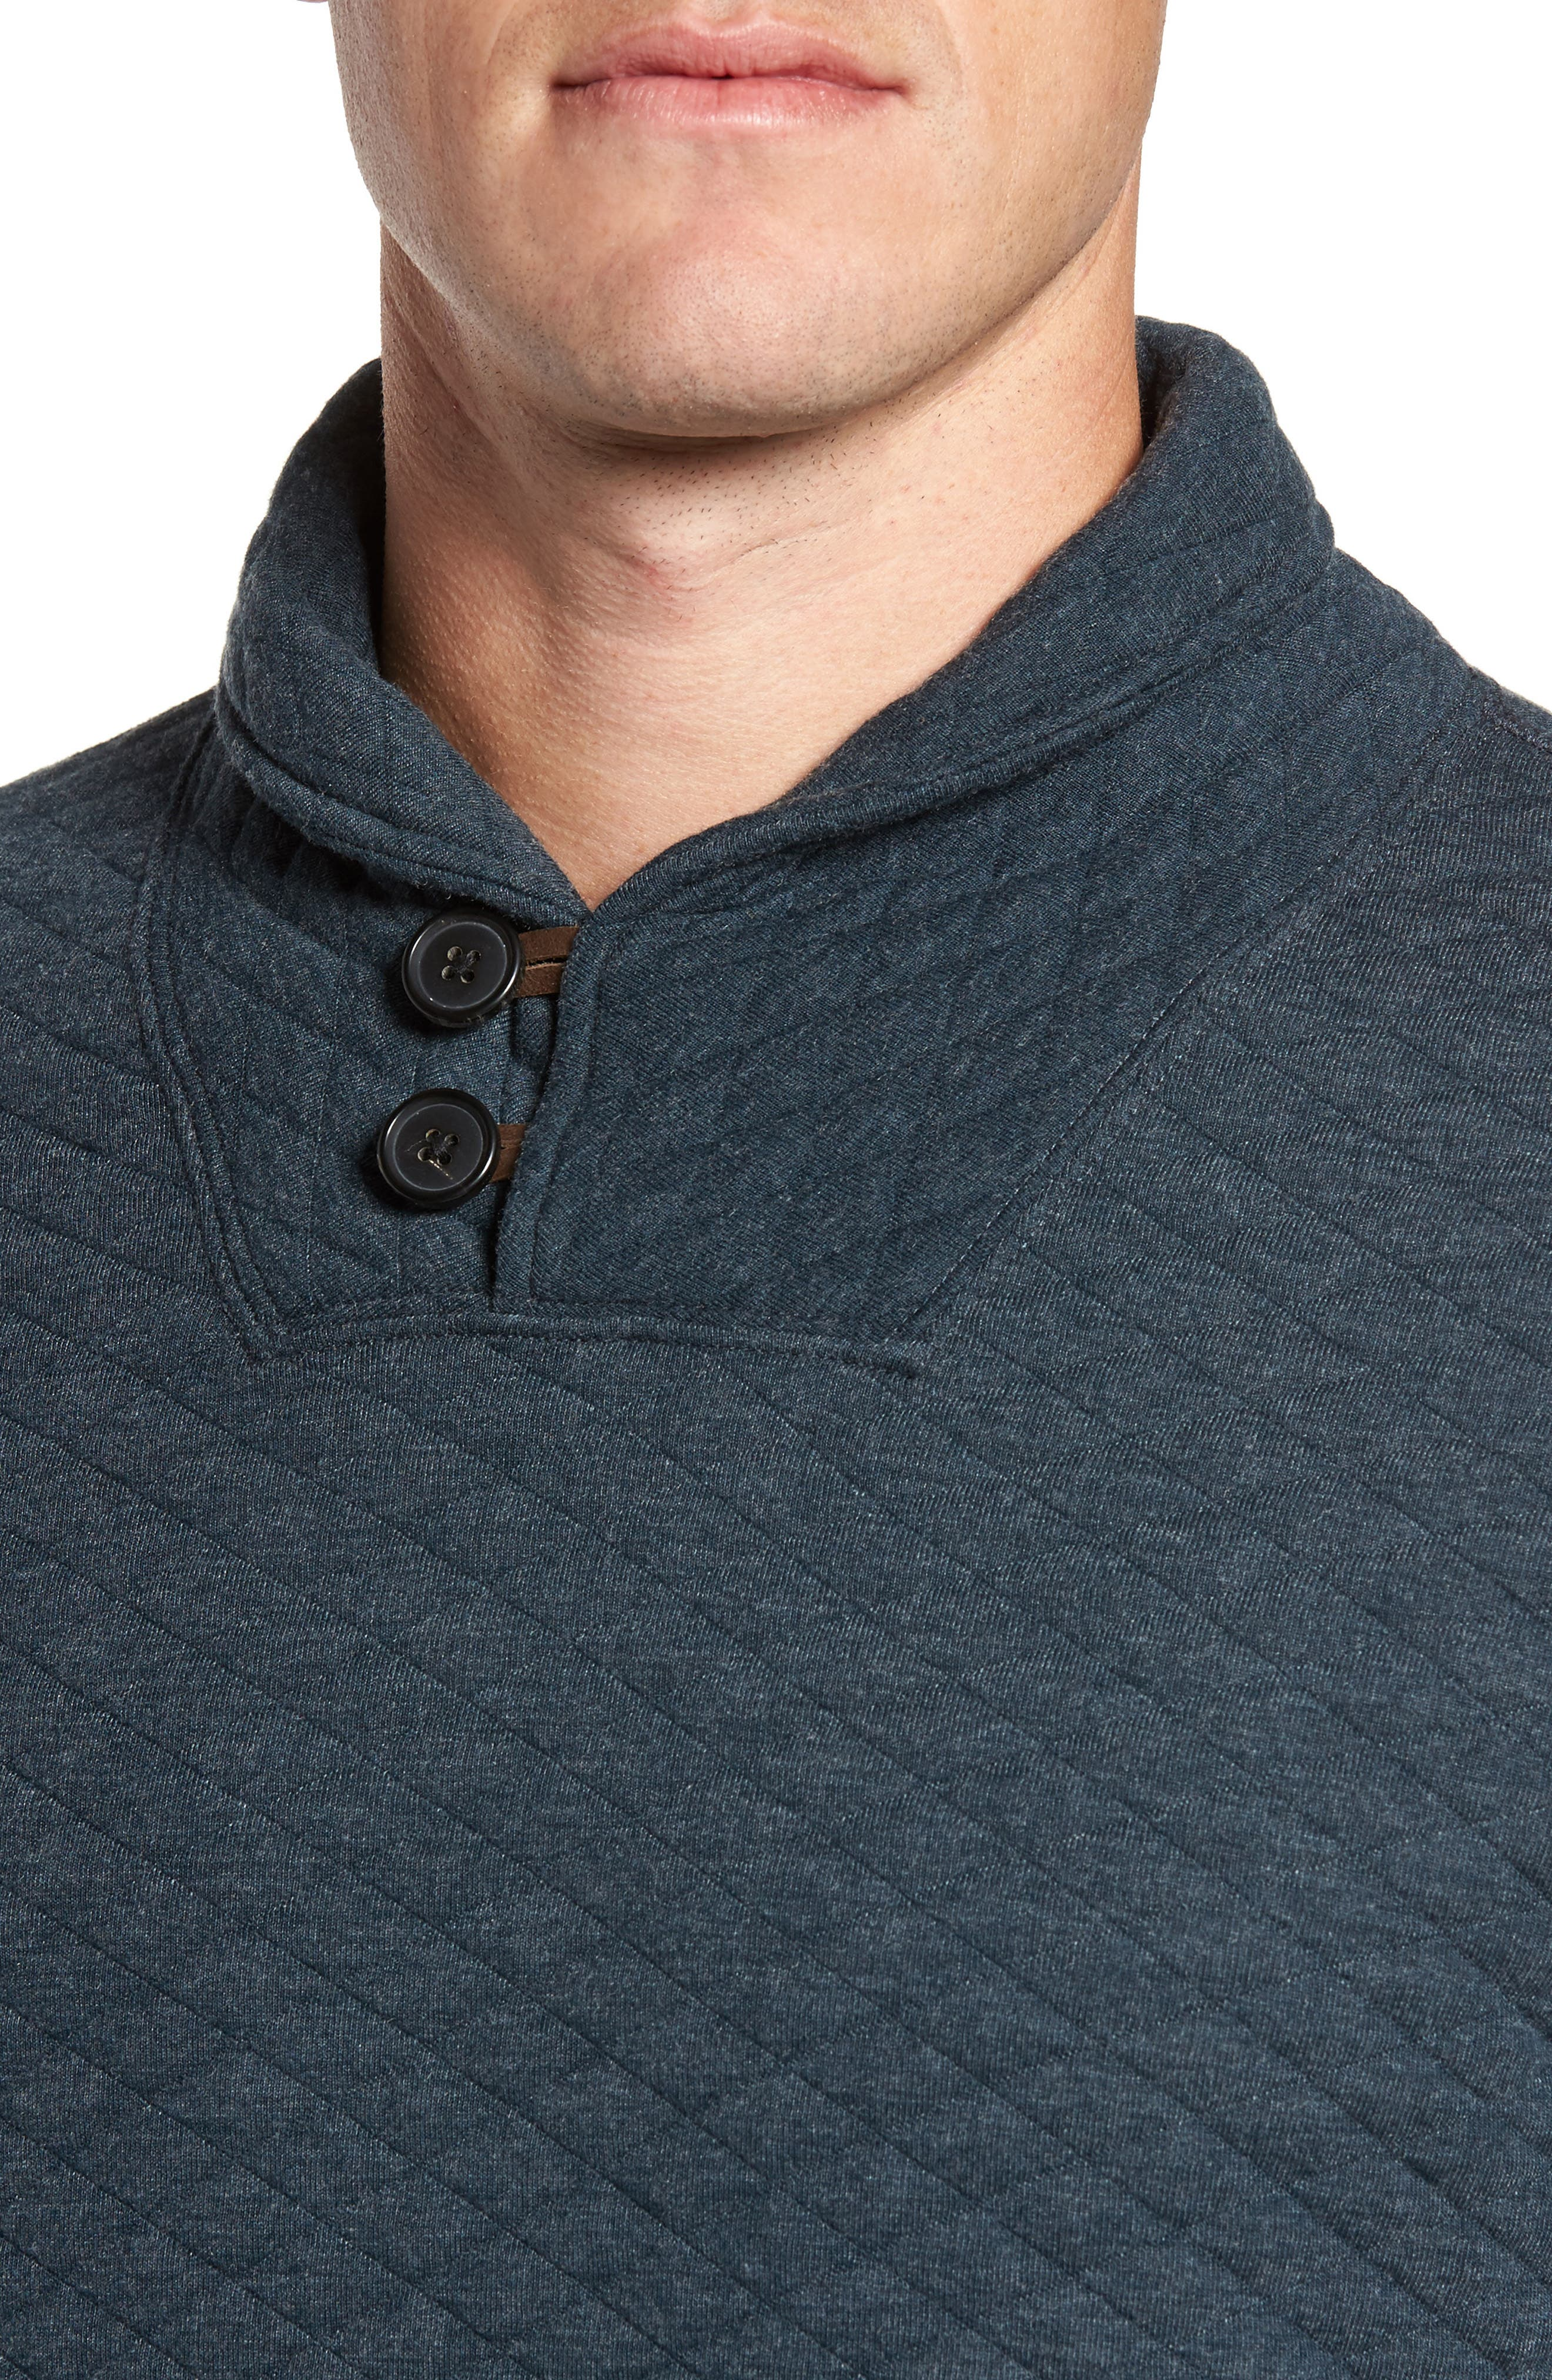 Shawl Collar Pullover,                             Alternate thumbnail 4, color,                             Carbon Blue